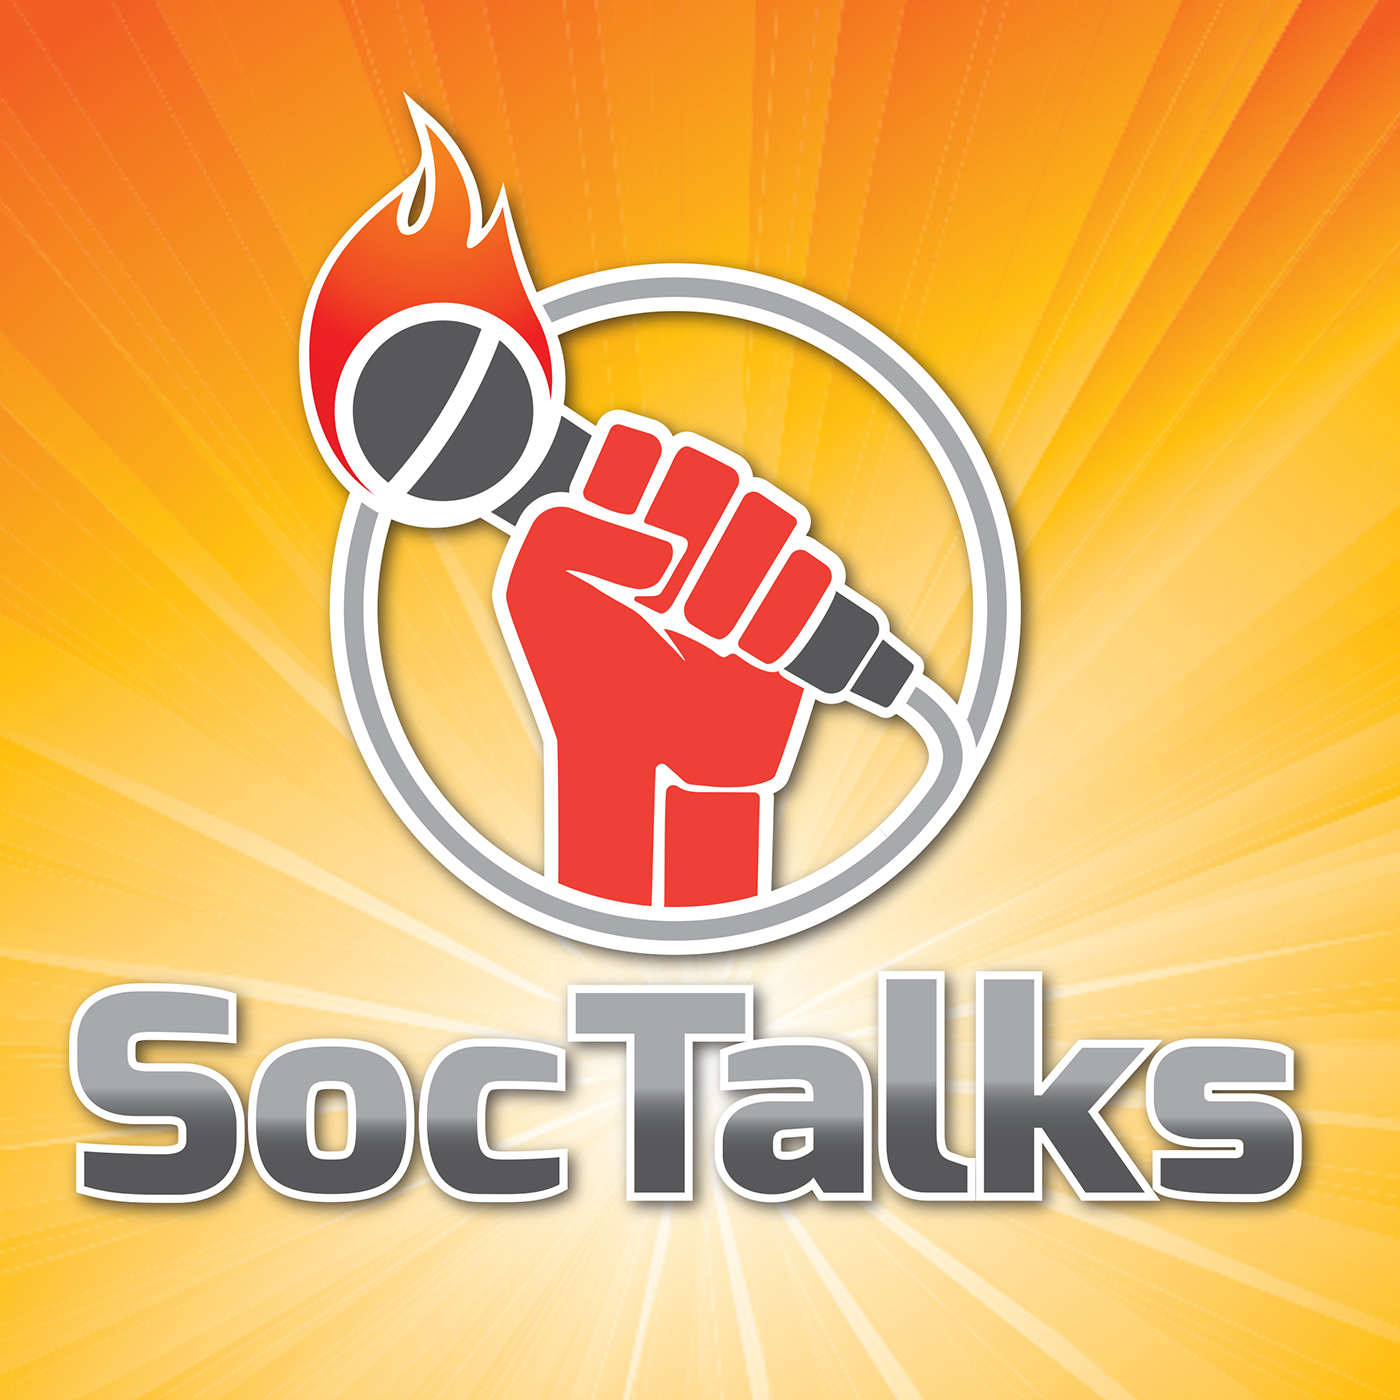 SocTalks Episode 023 Season 2 show art